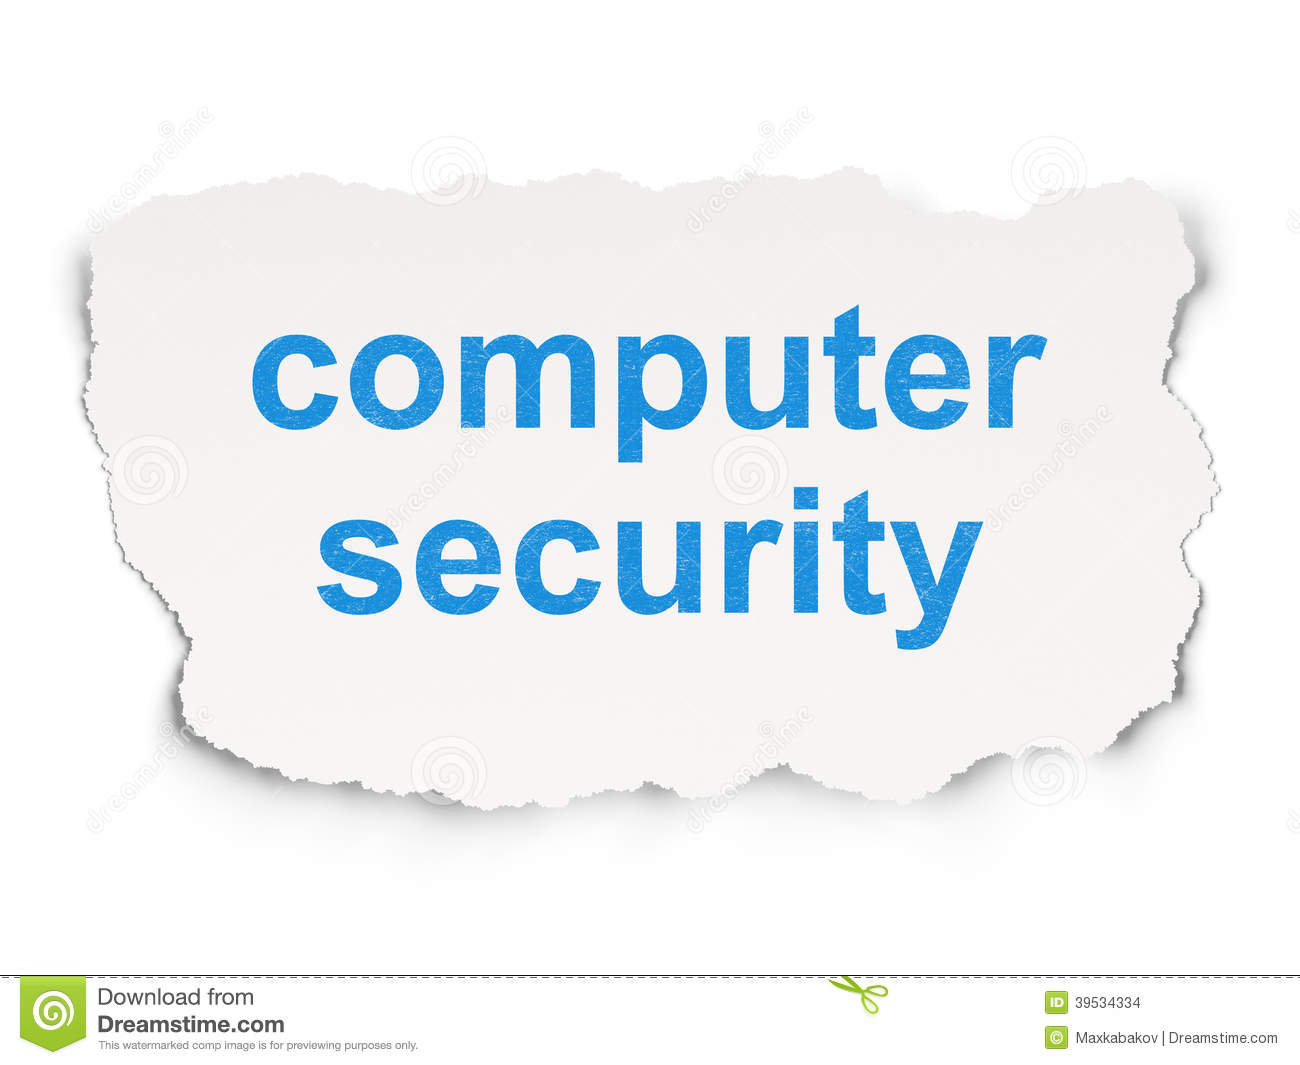 future computer security essay Maintenance and security and future considerations on studybaycom - computer science, essay - dmitry | 227686.